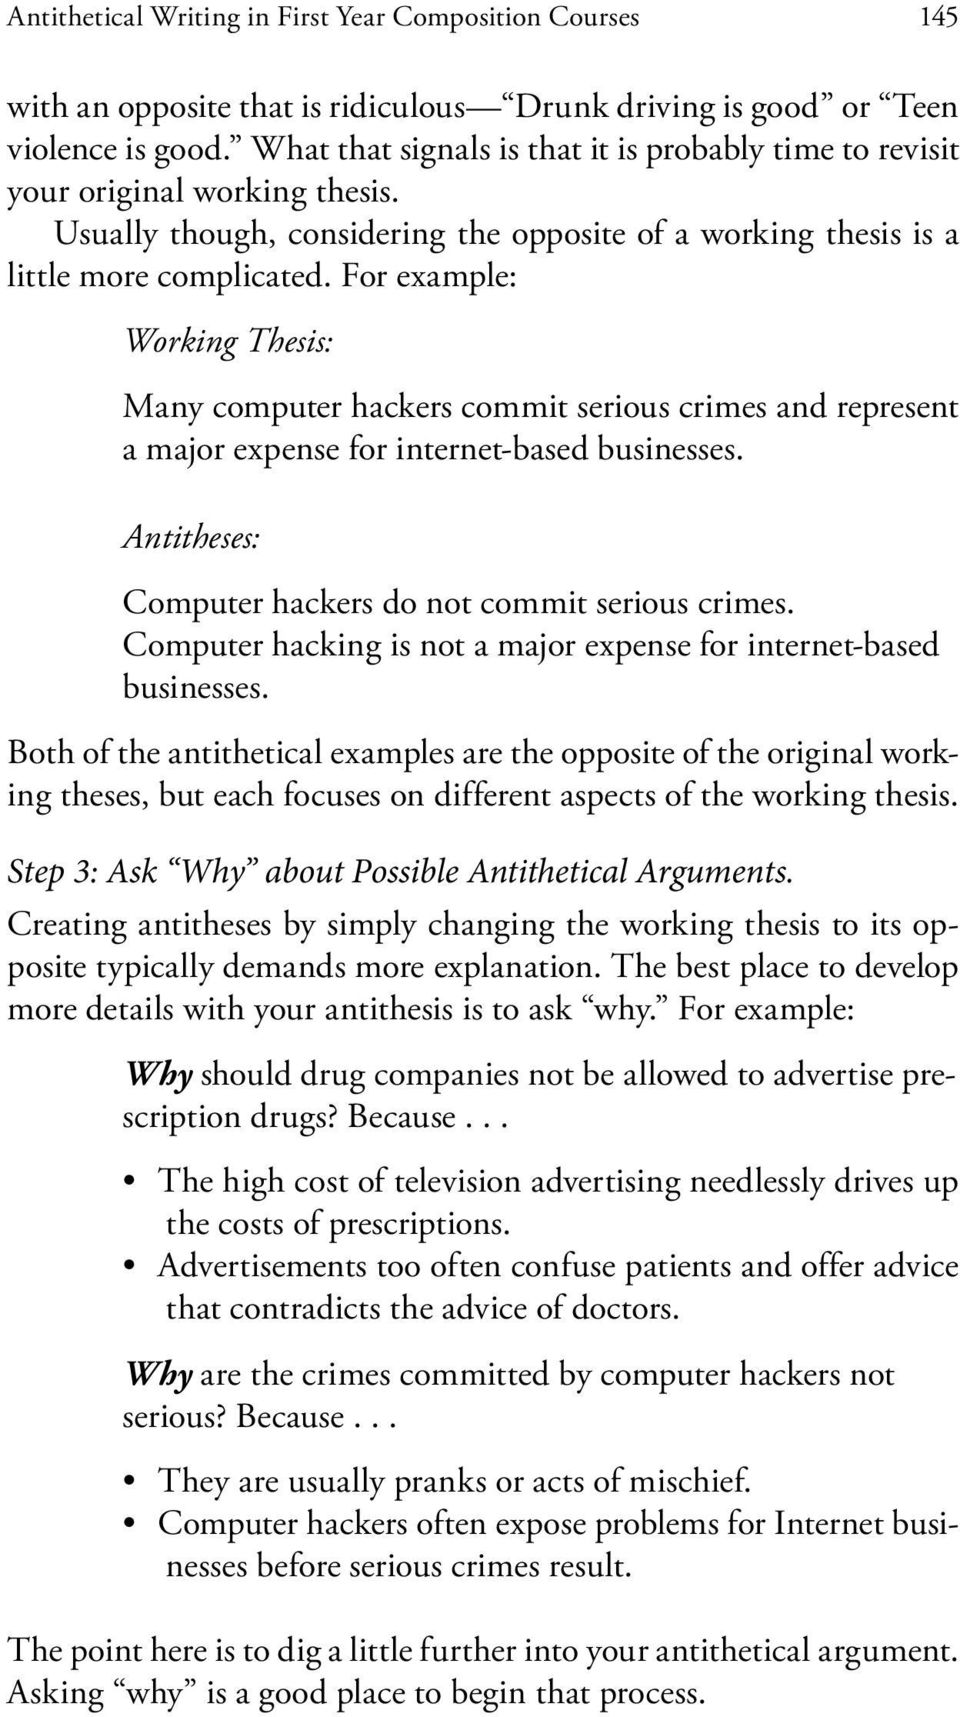 For example: Working Thesis: Many computer hackers commit serious crimes and represent a major expense for internet-based businesses. Antitheses: Computer hackers do not commit serious crimes.